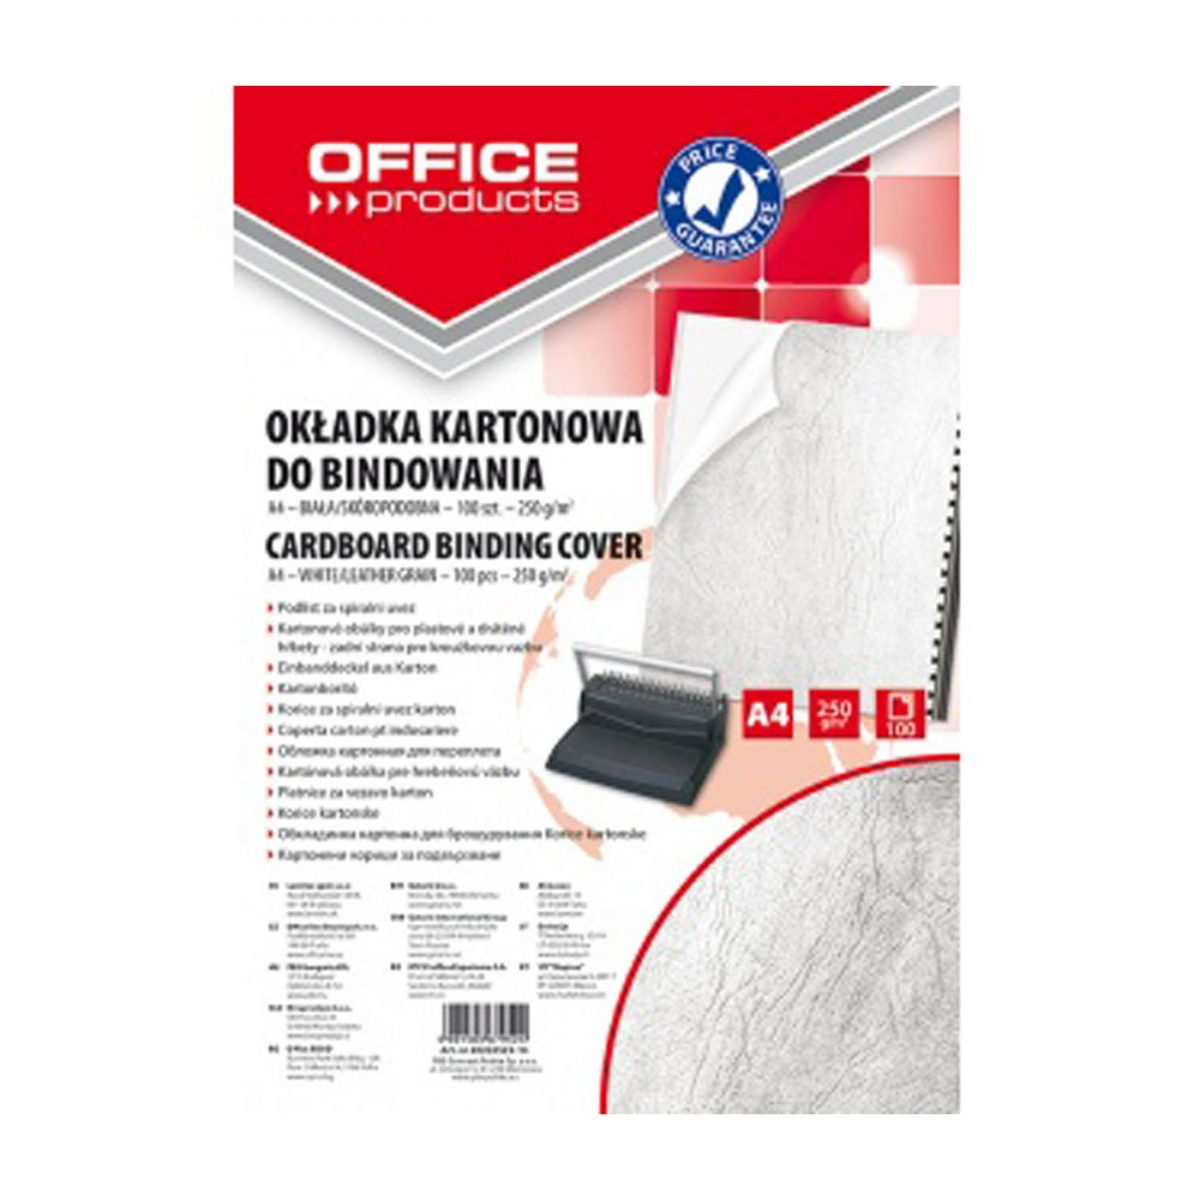 Coperta carton imitatie piele 250g/mp, A4, 100/top Office Products